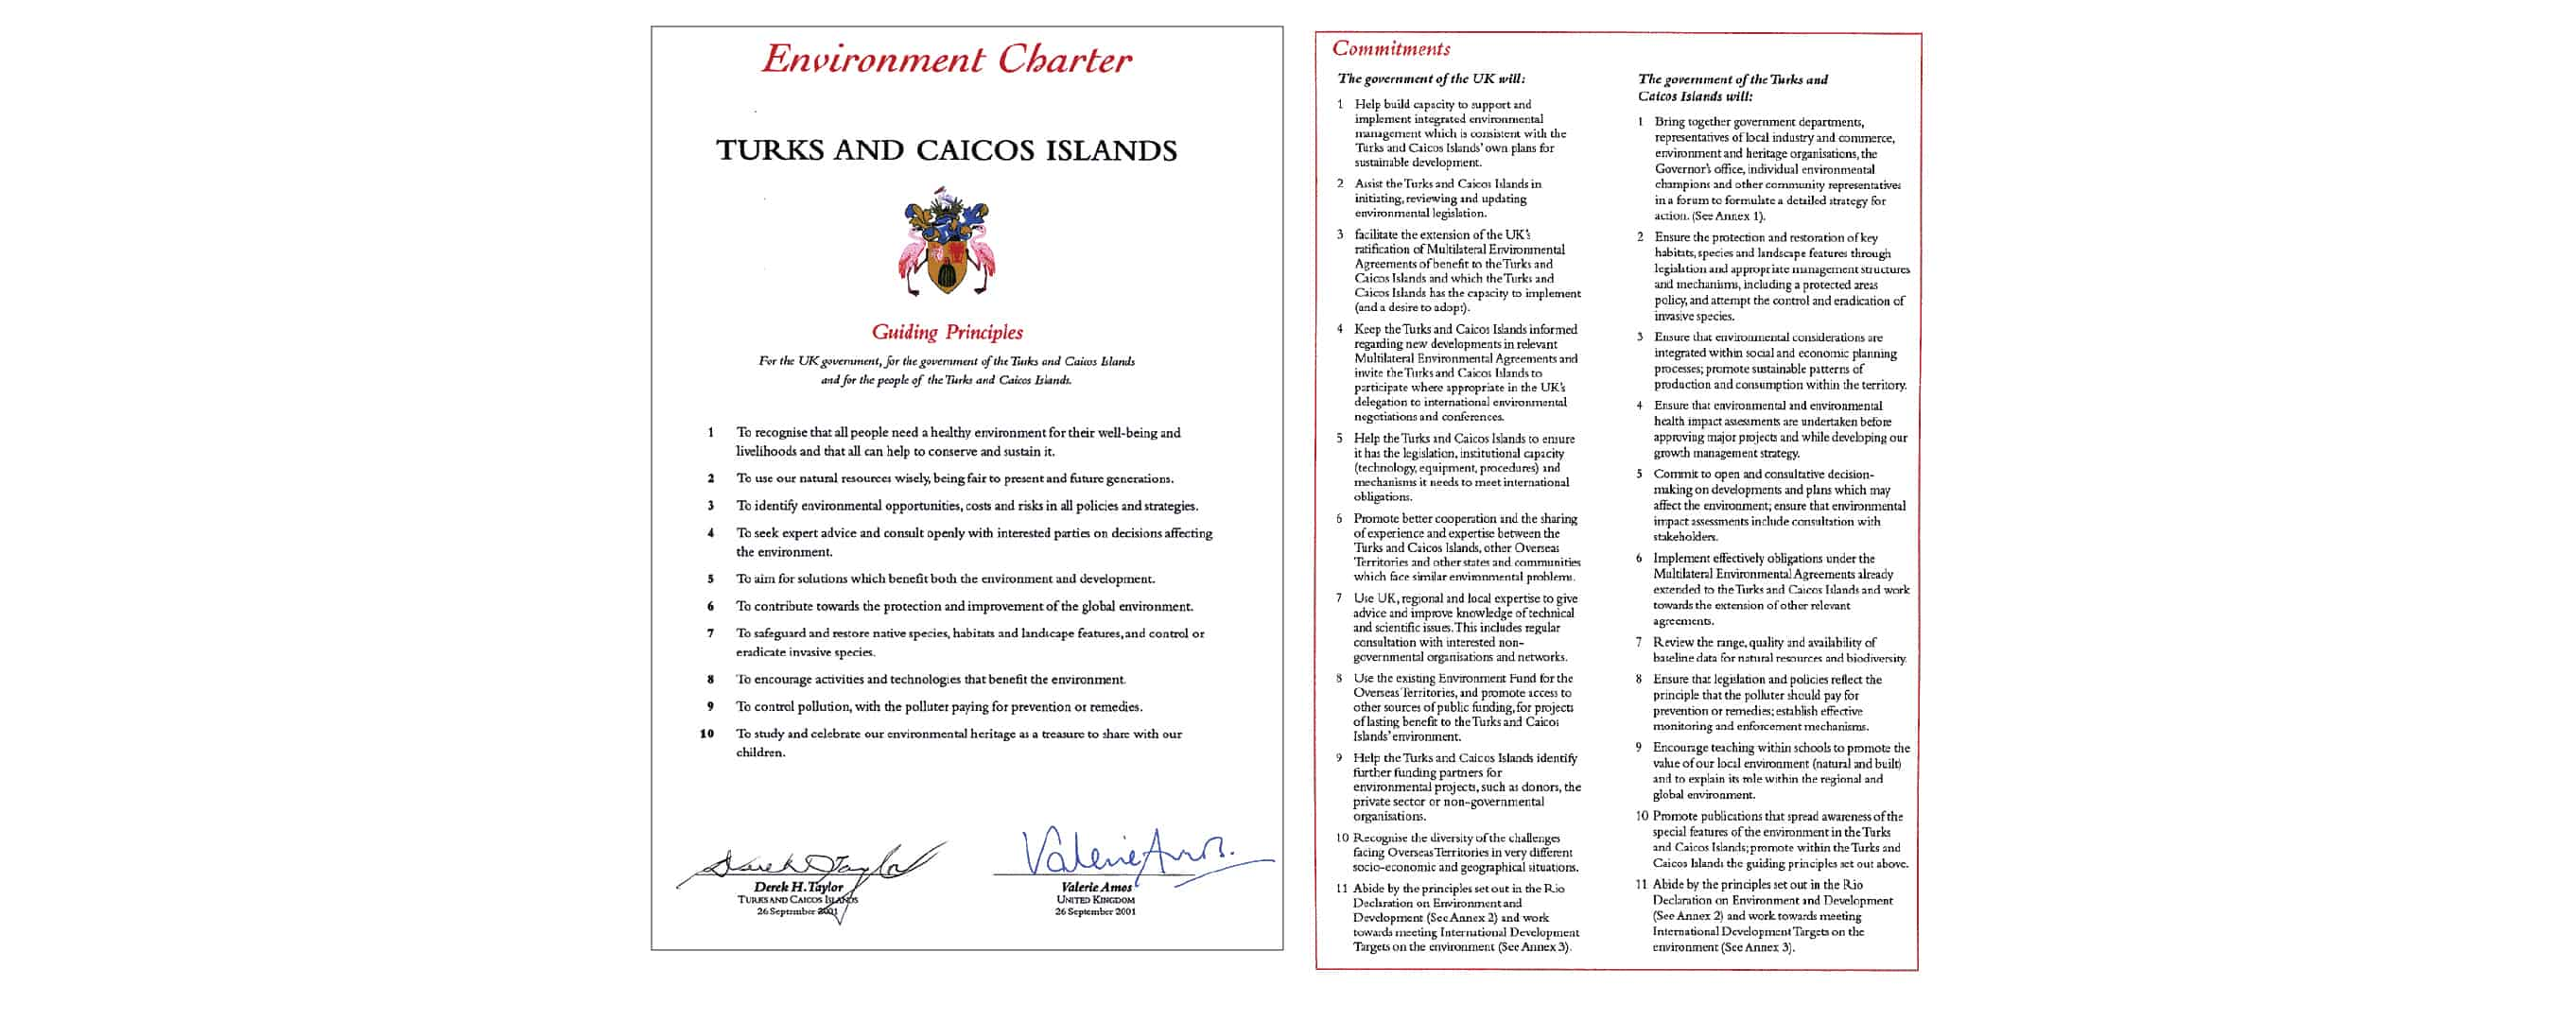 Example of Environment Charter